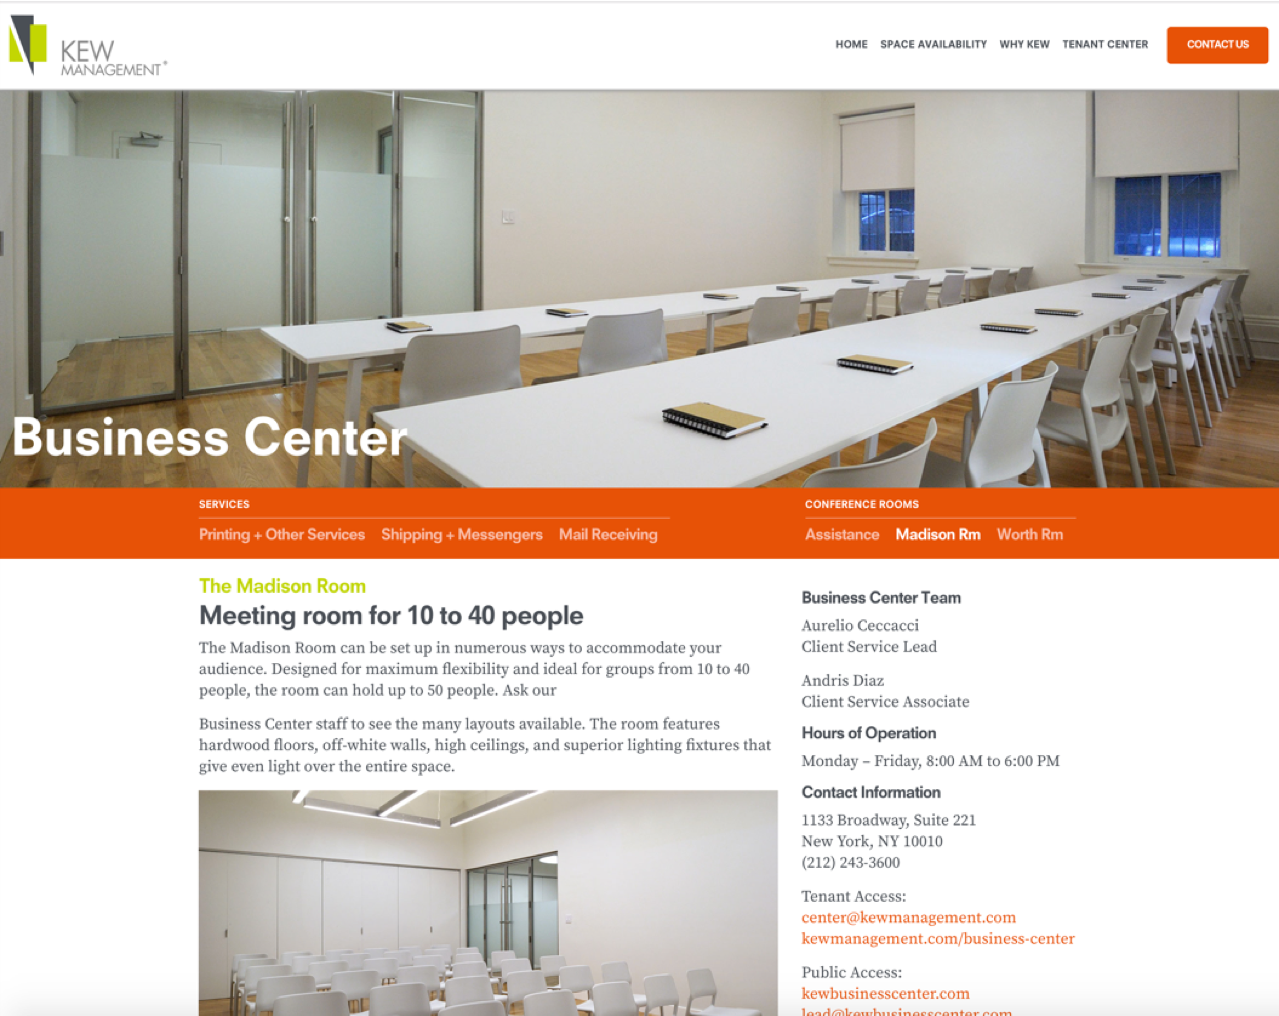 Info on Business Center & Conference Rooms - Kew Management